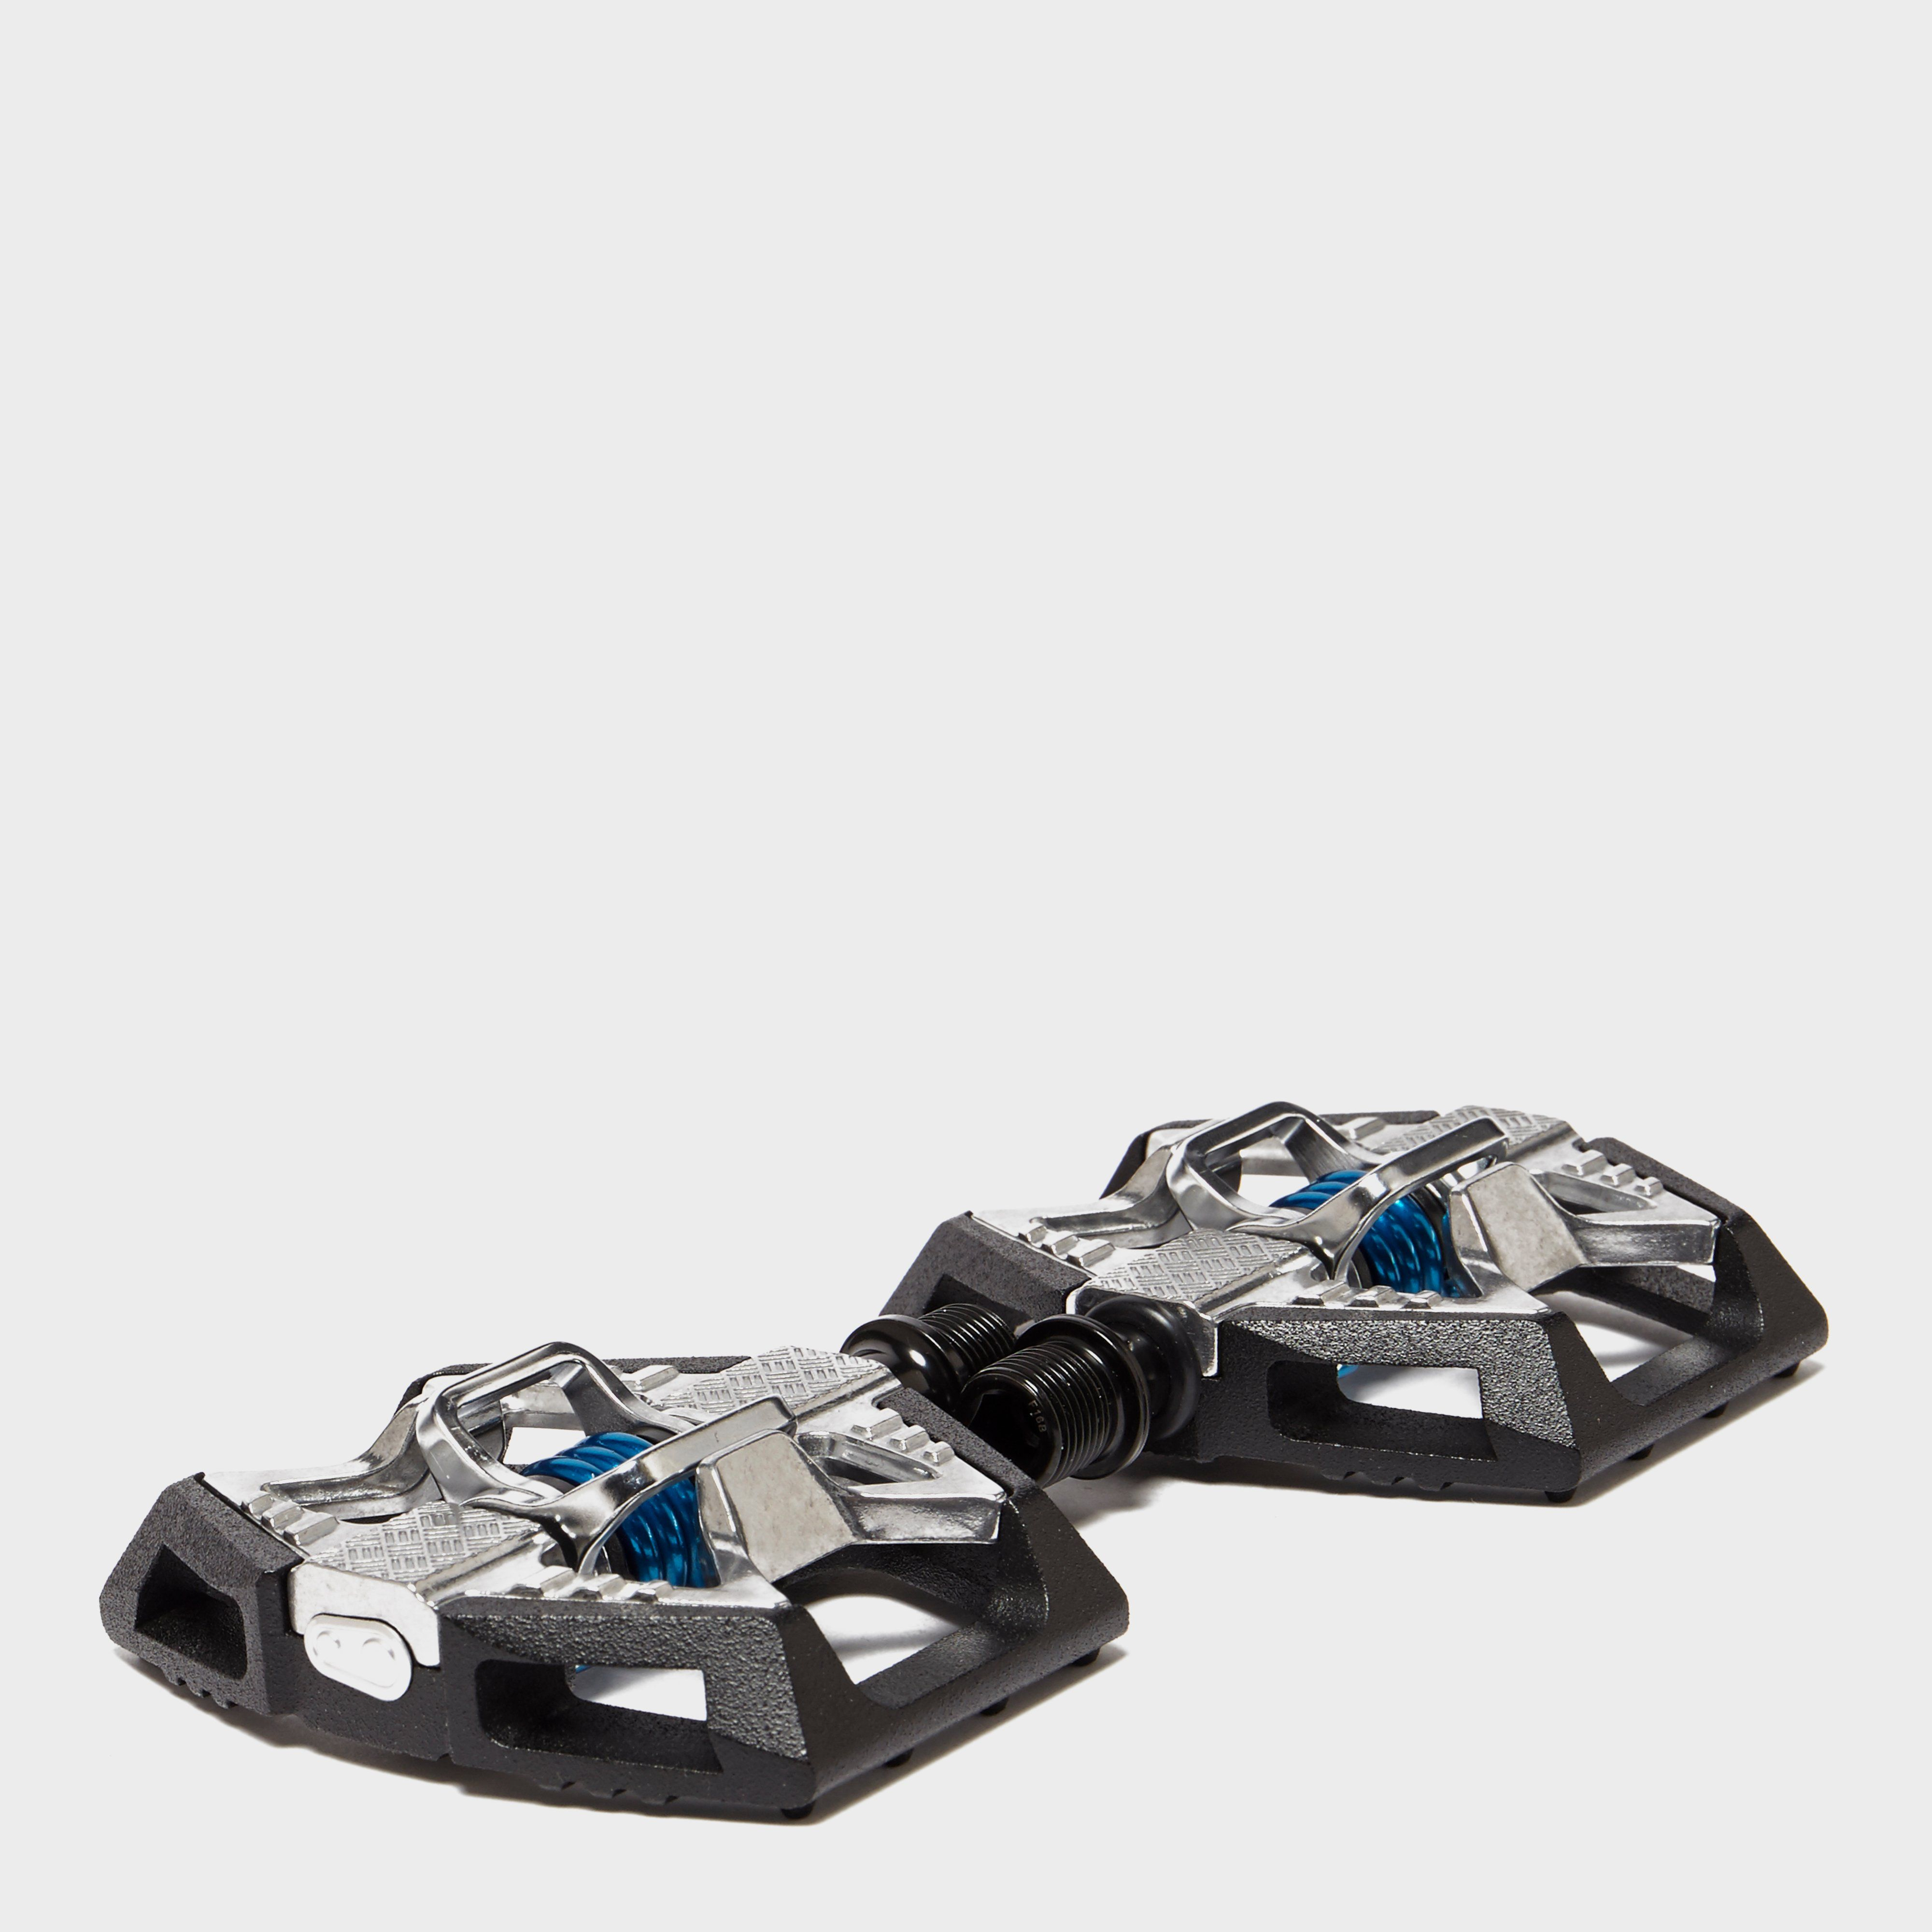 CRANKBROTHERS Double Shot Pedals